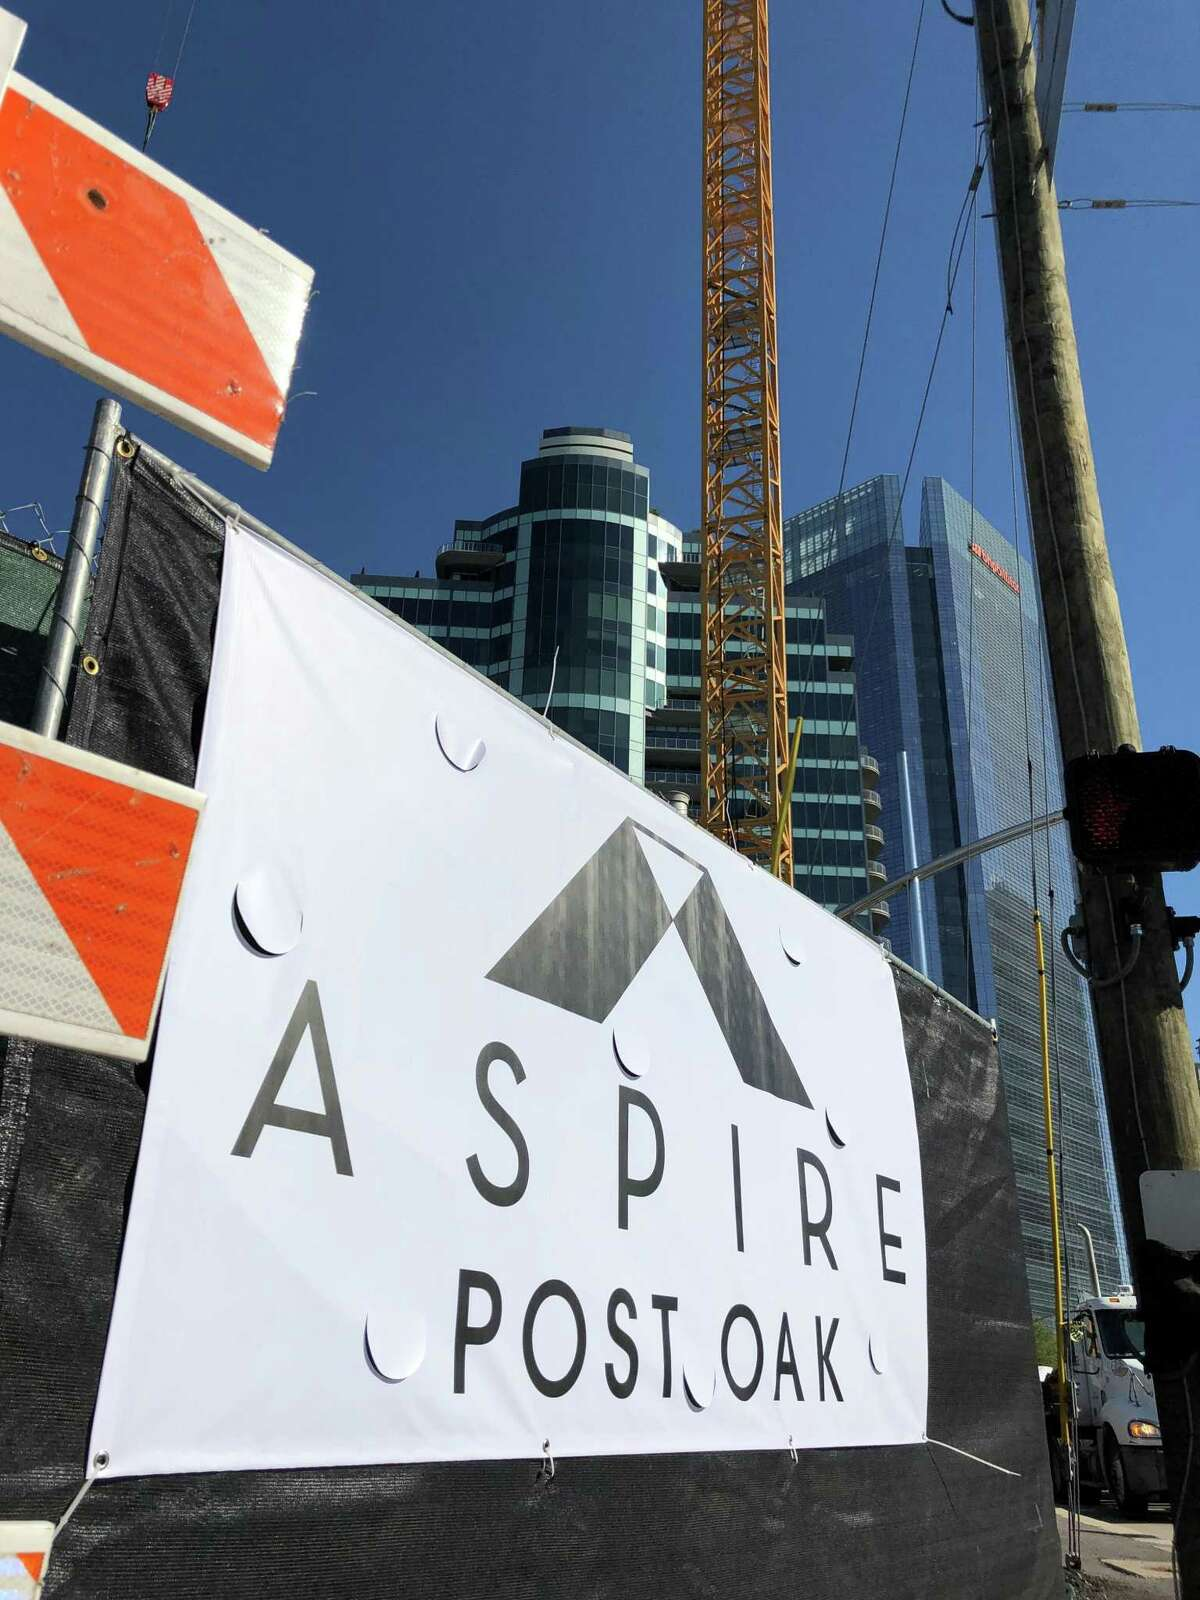 The Aspire Post Oak under construction April 9, 2019. The 39-story tower will have 383 units.